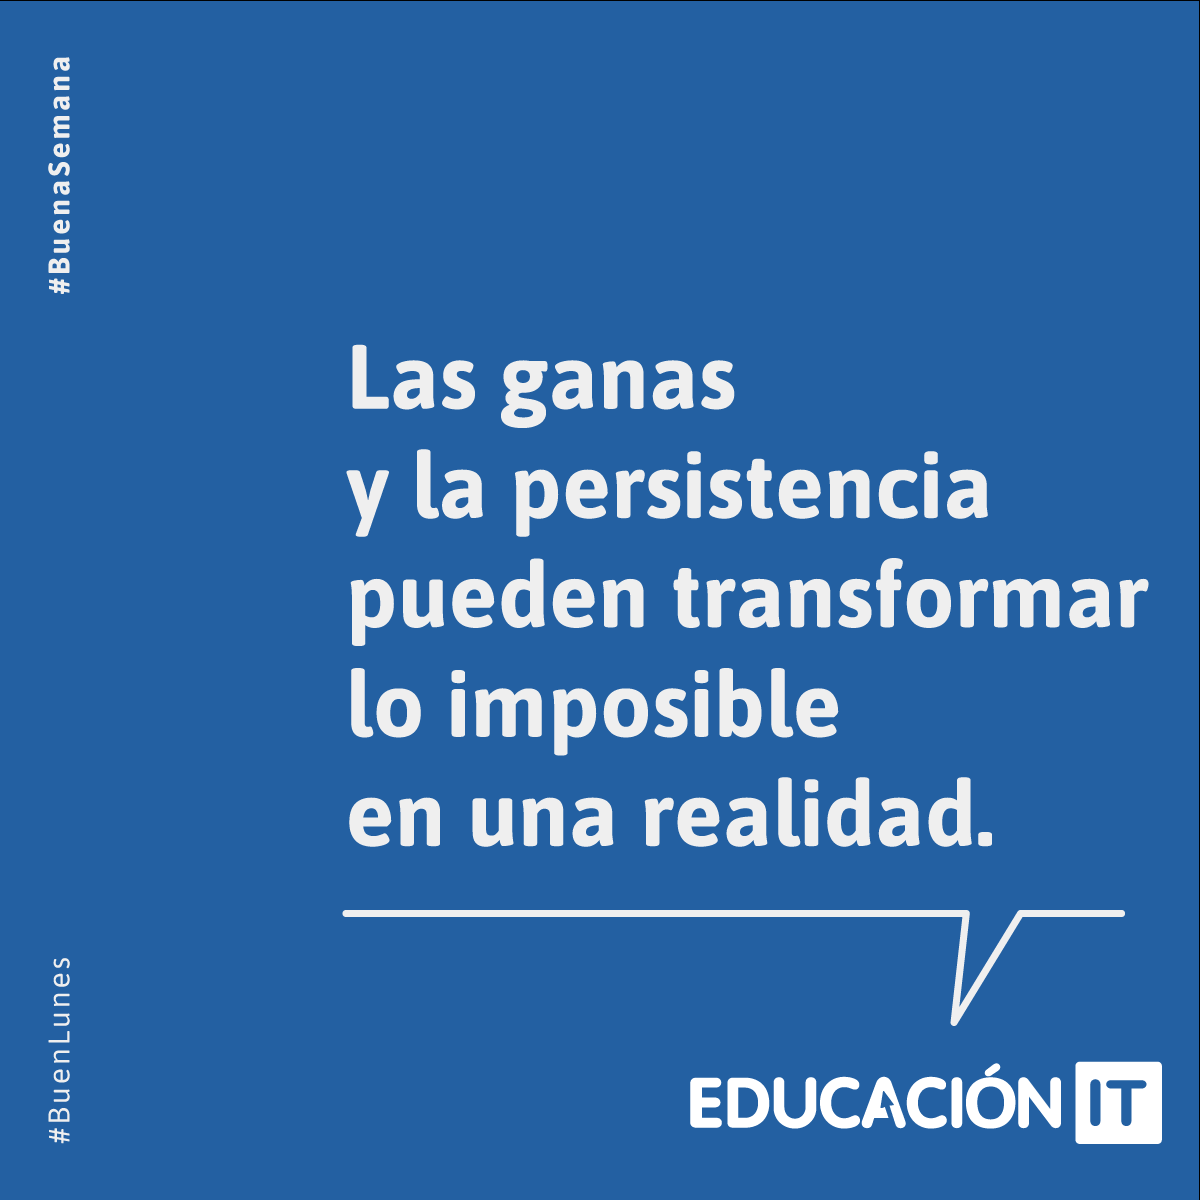 EducacionIT's photo on #BuenaSemana